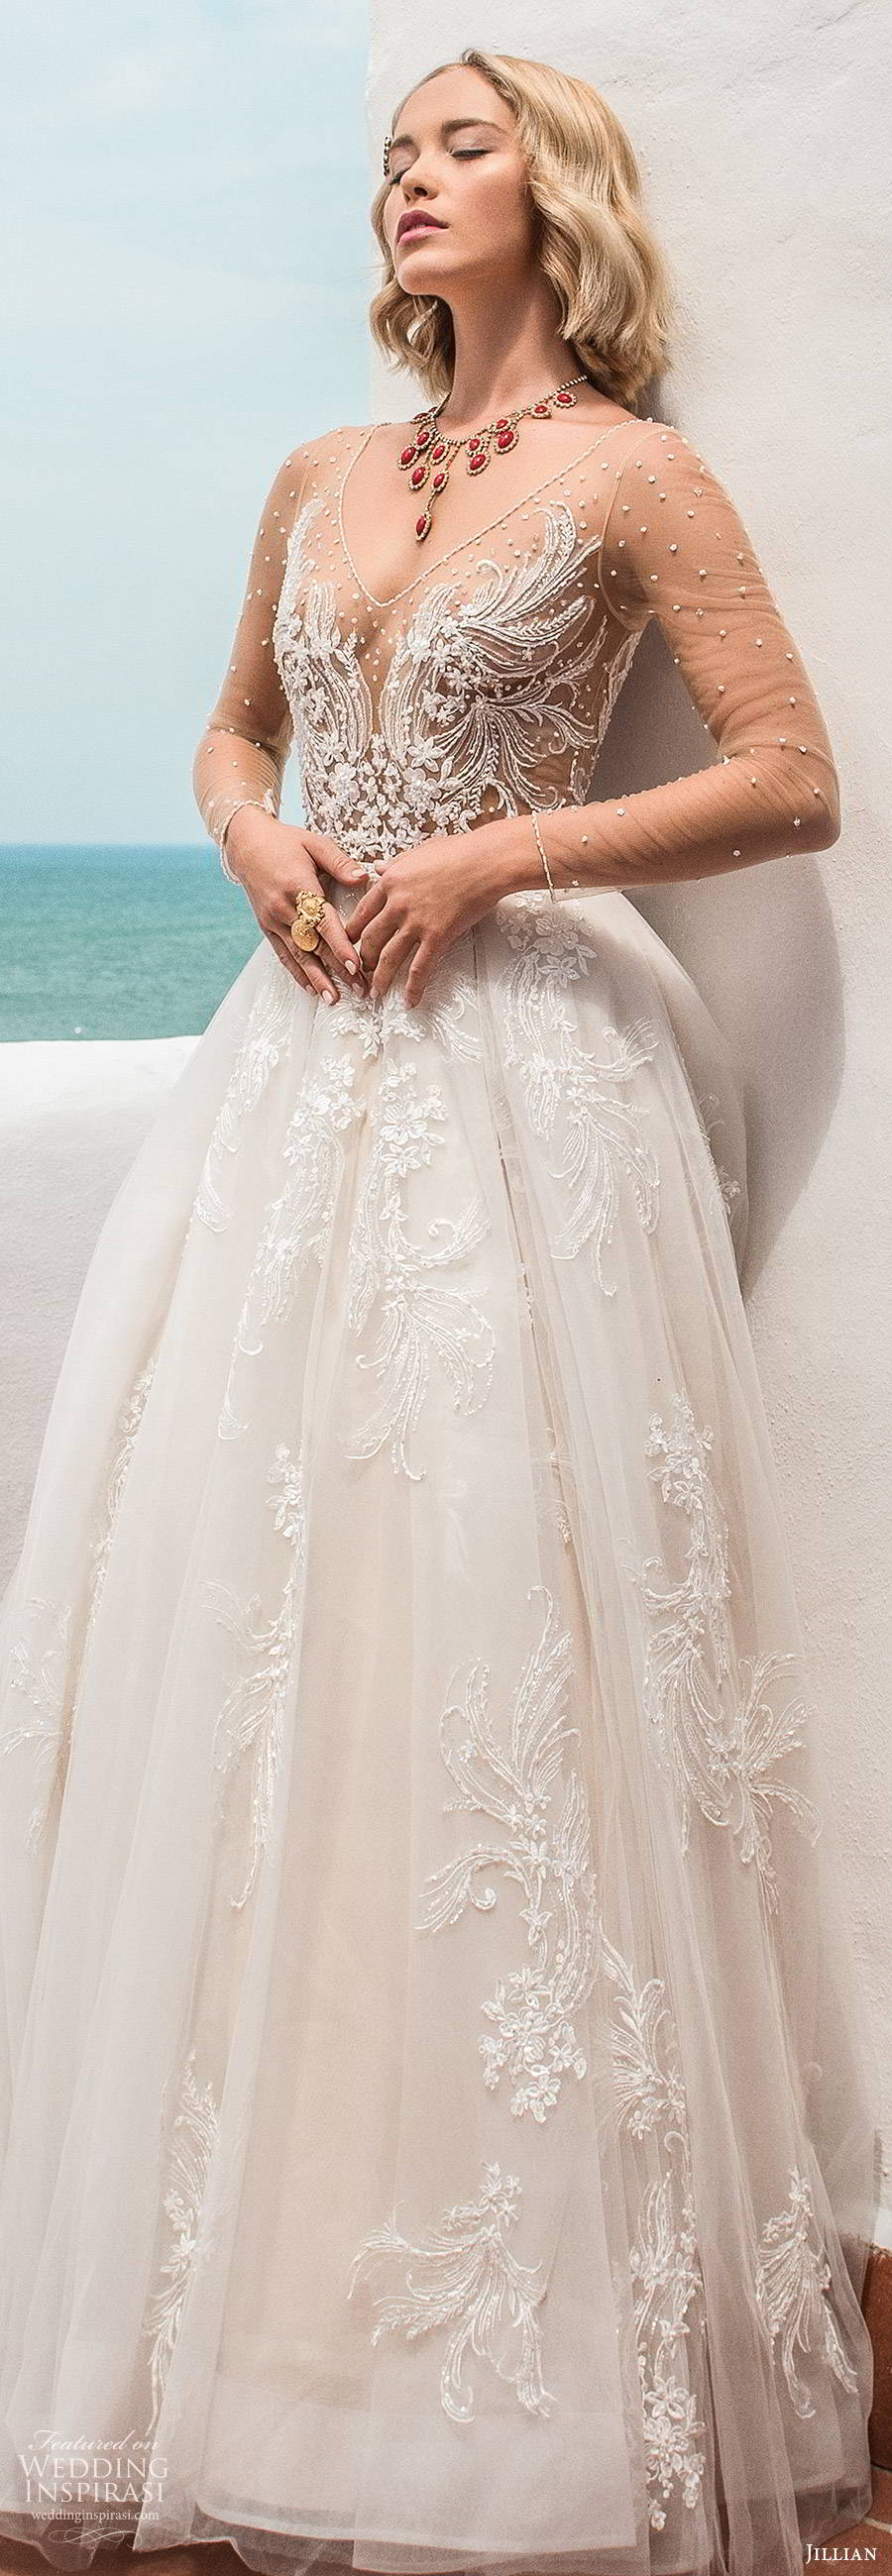 jillian sposa 2020 bridal illusion long sleeves sheer v neckline fully embellished a line ball gown wedding dress sheer v back cathedral train (7) lv